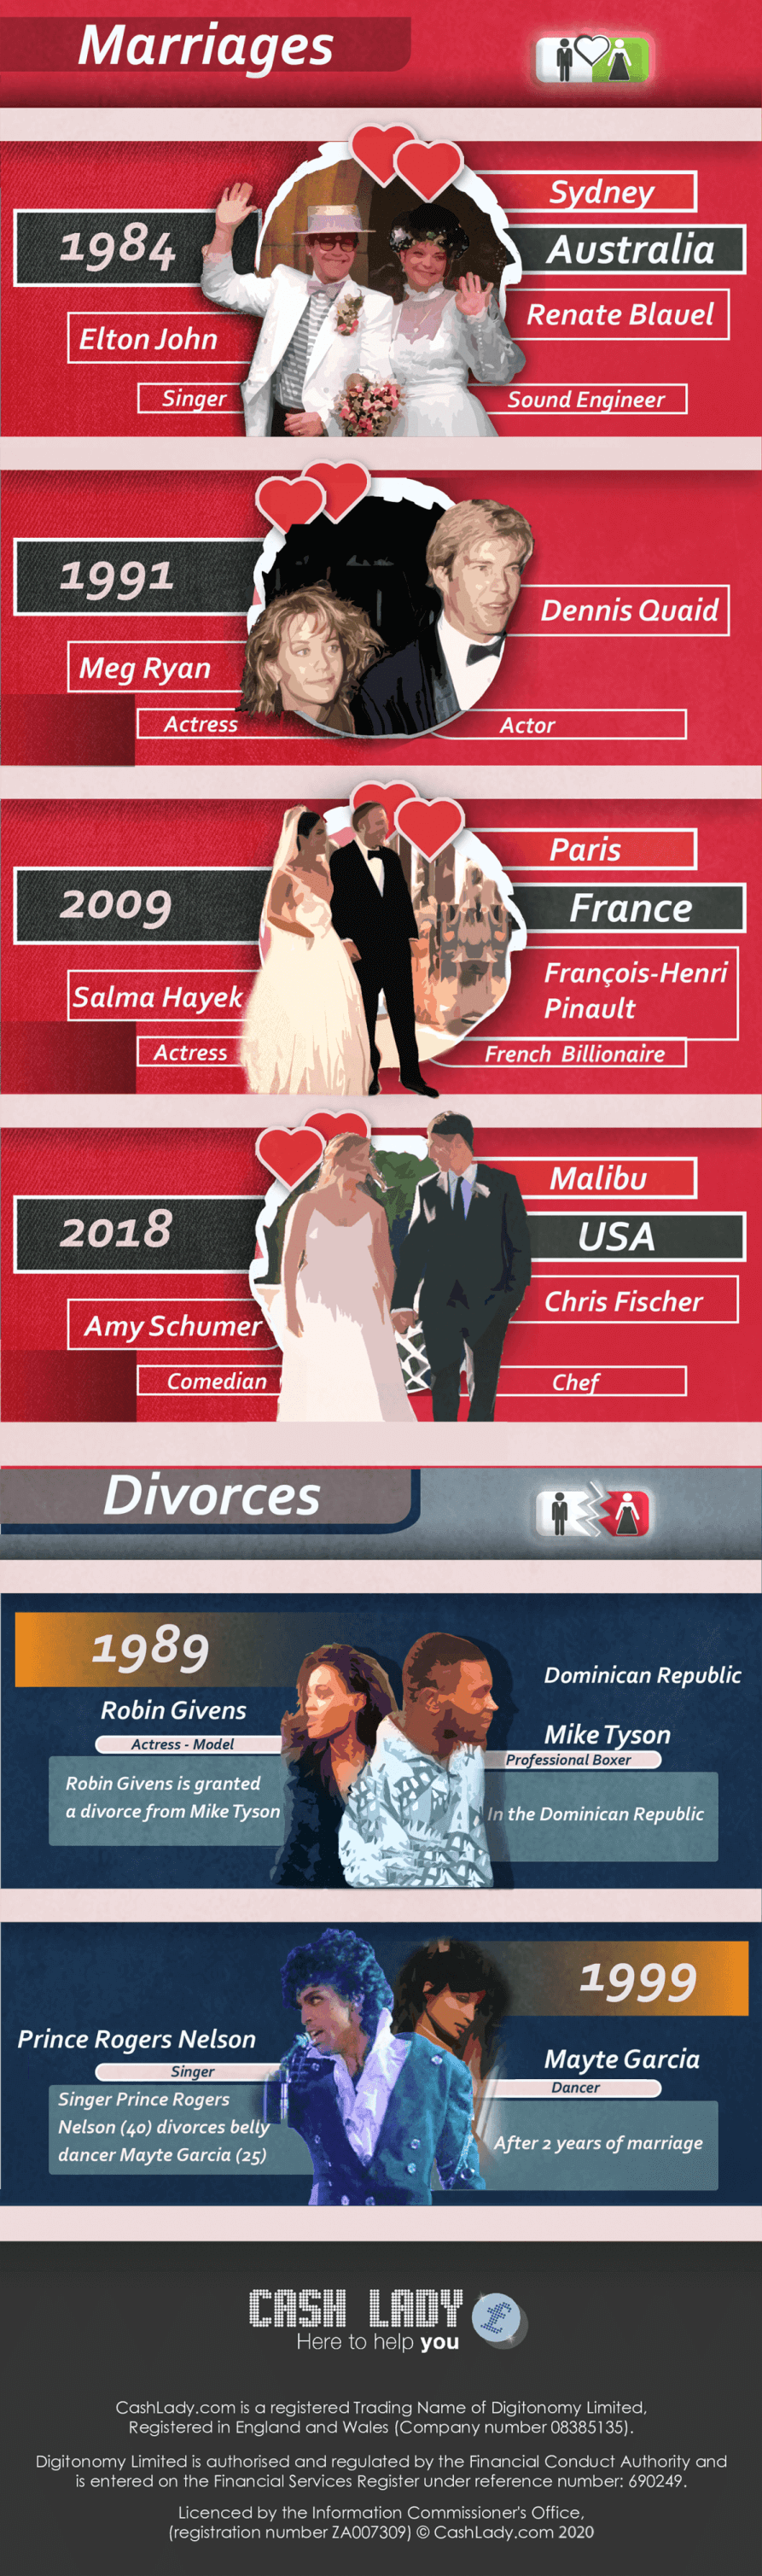 14-february-famous-marriages-divorces-CashLady